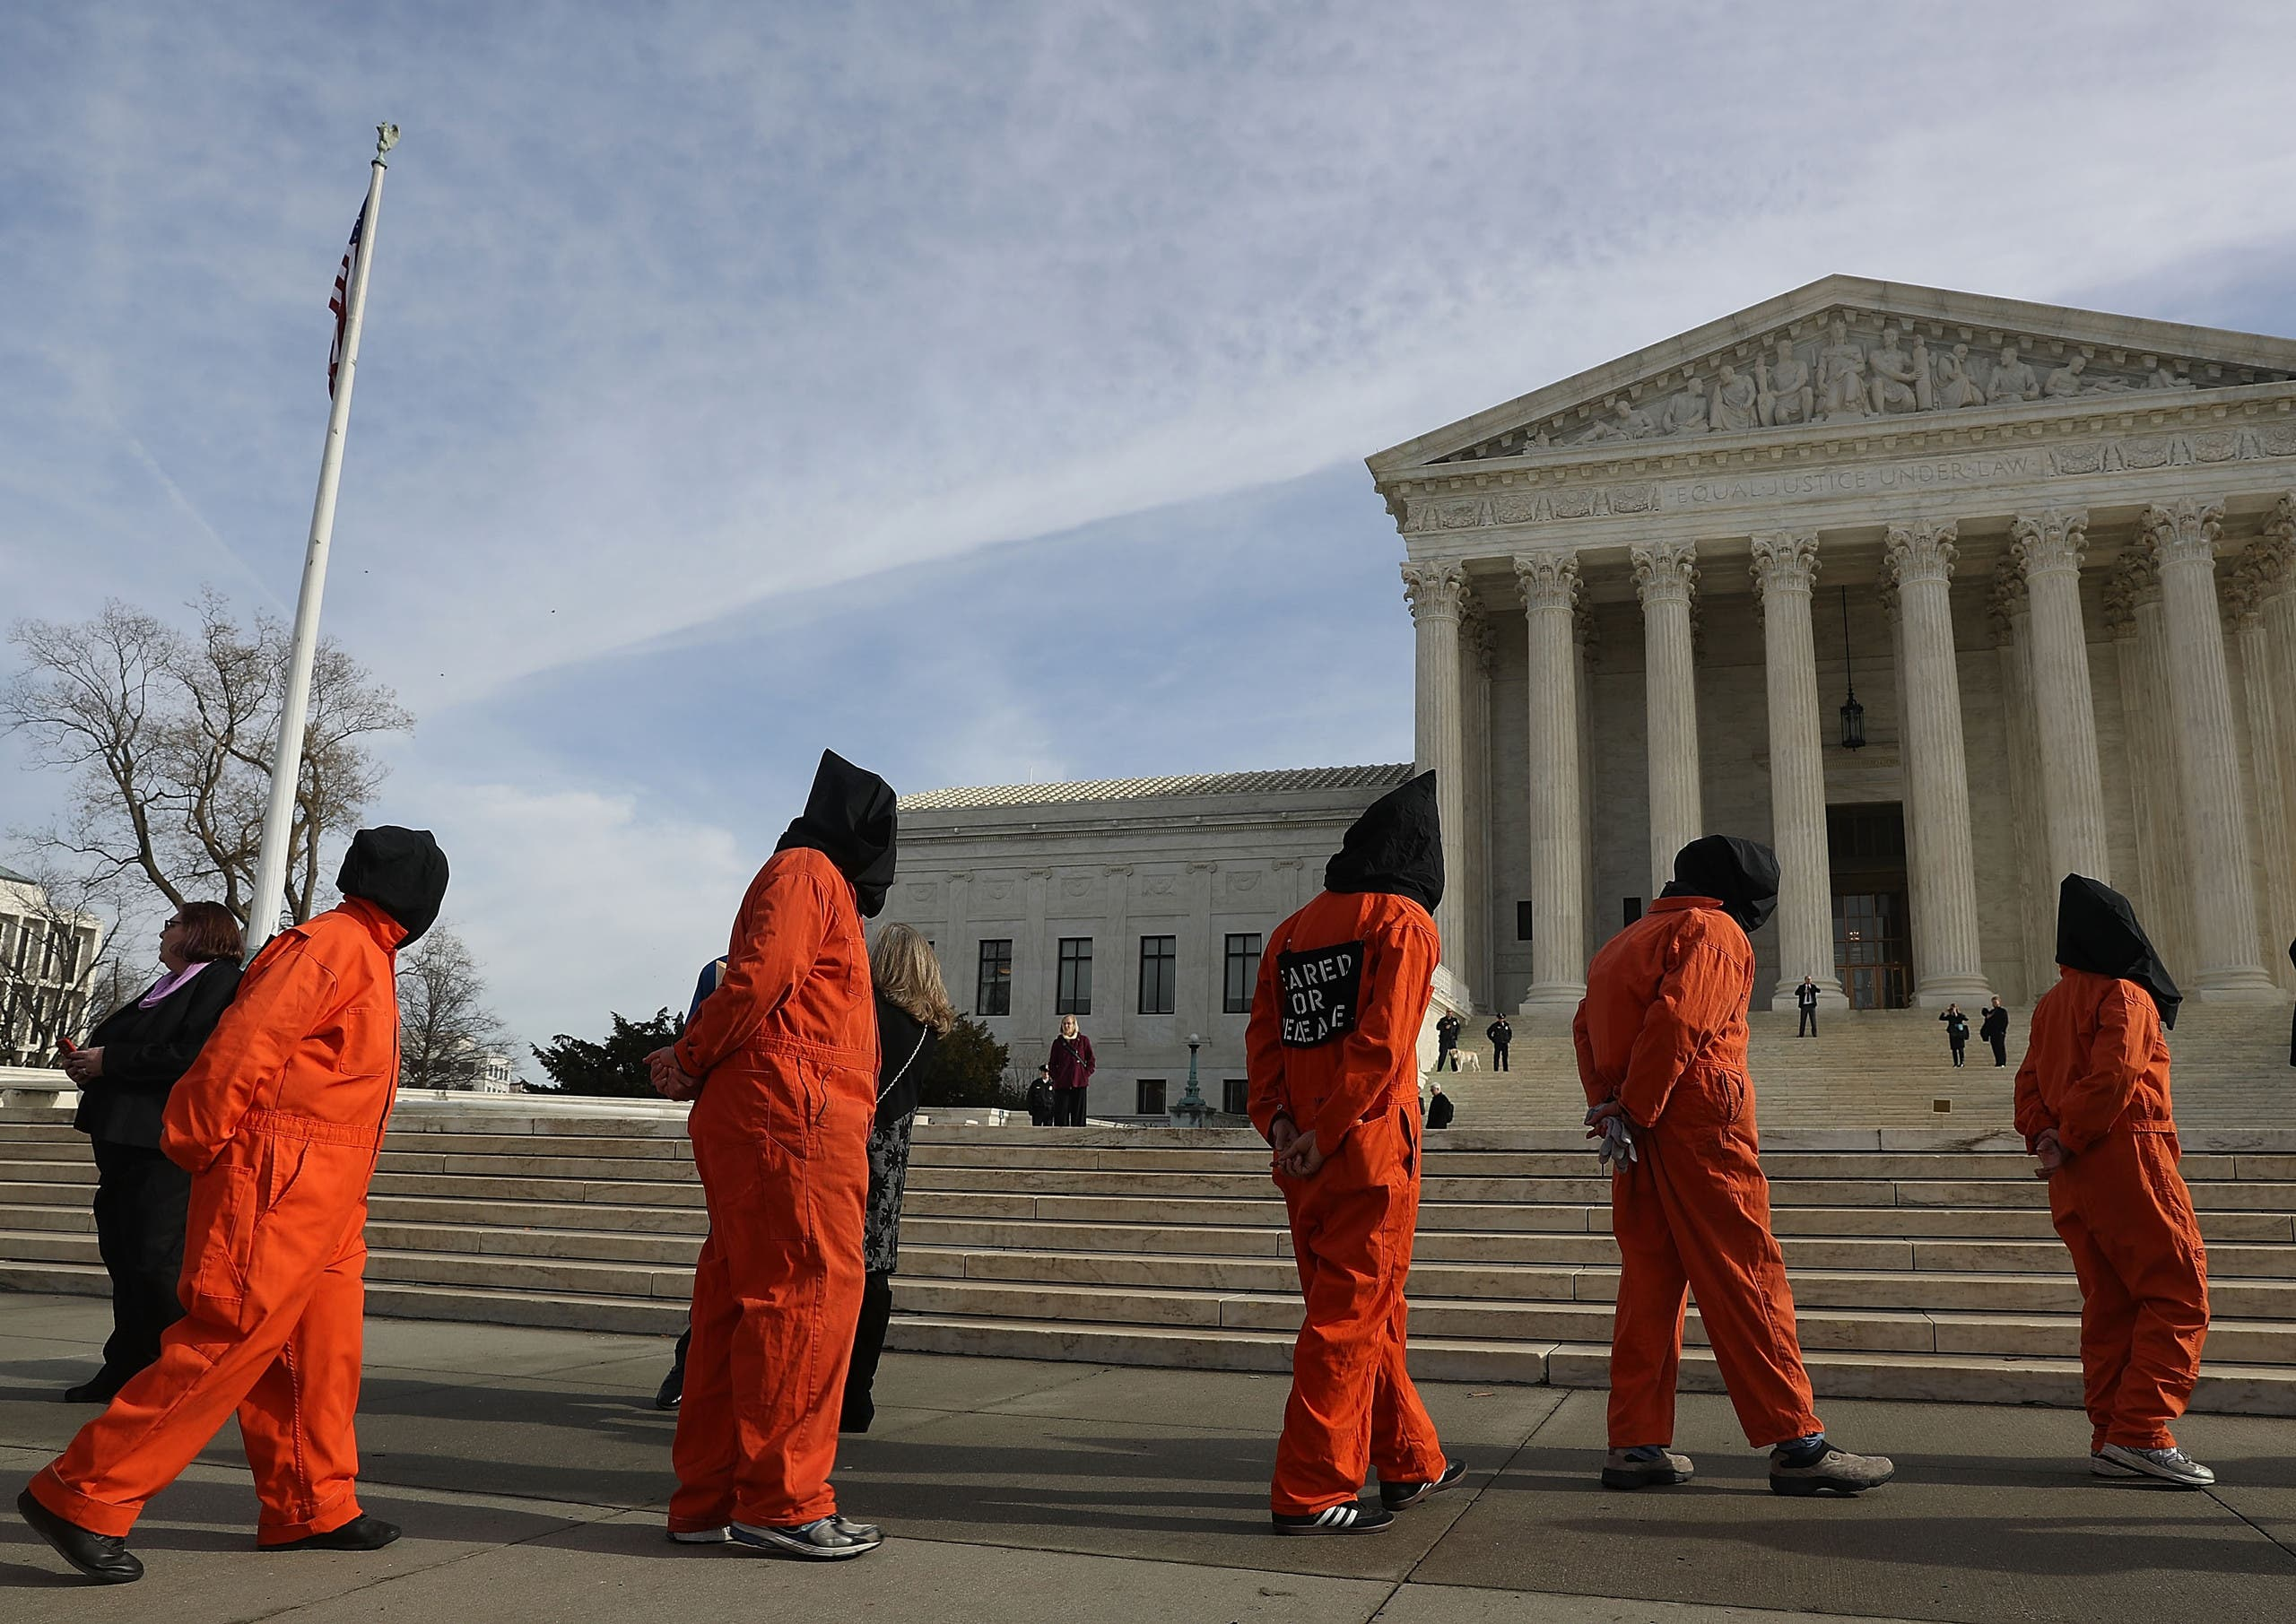 Protesters gather in front of the US Supreme Court to mark 15 years since the first prisoners were brought to the US detention facility in Guantanamo Bay, Cuba on January 11, 2017 in Washington, DC. (AFP)